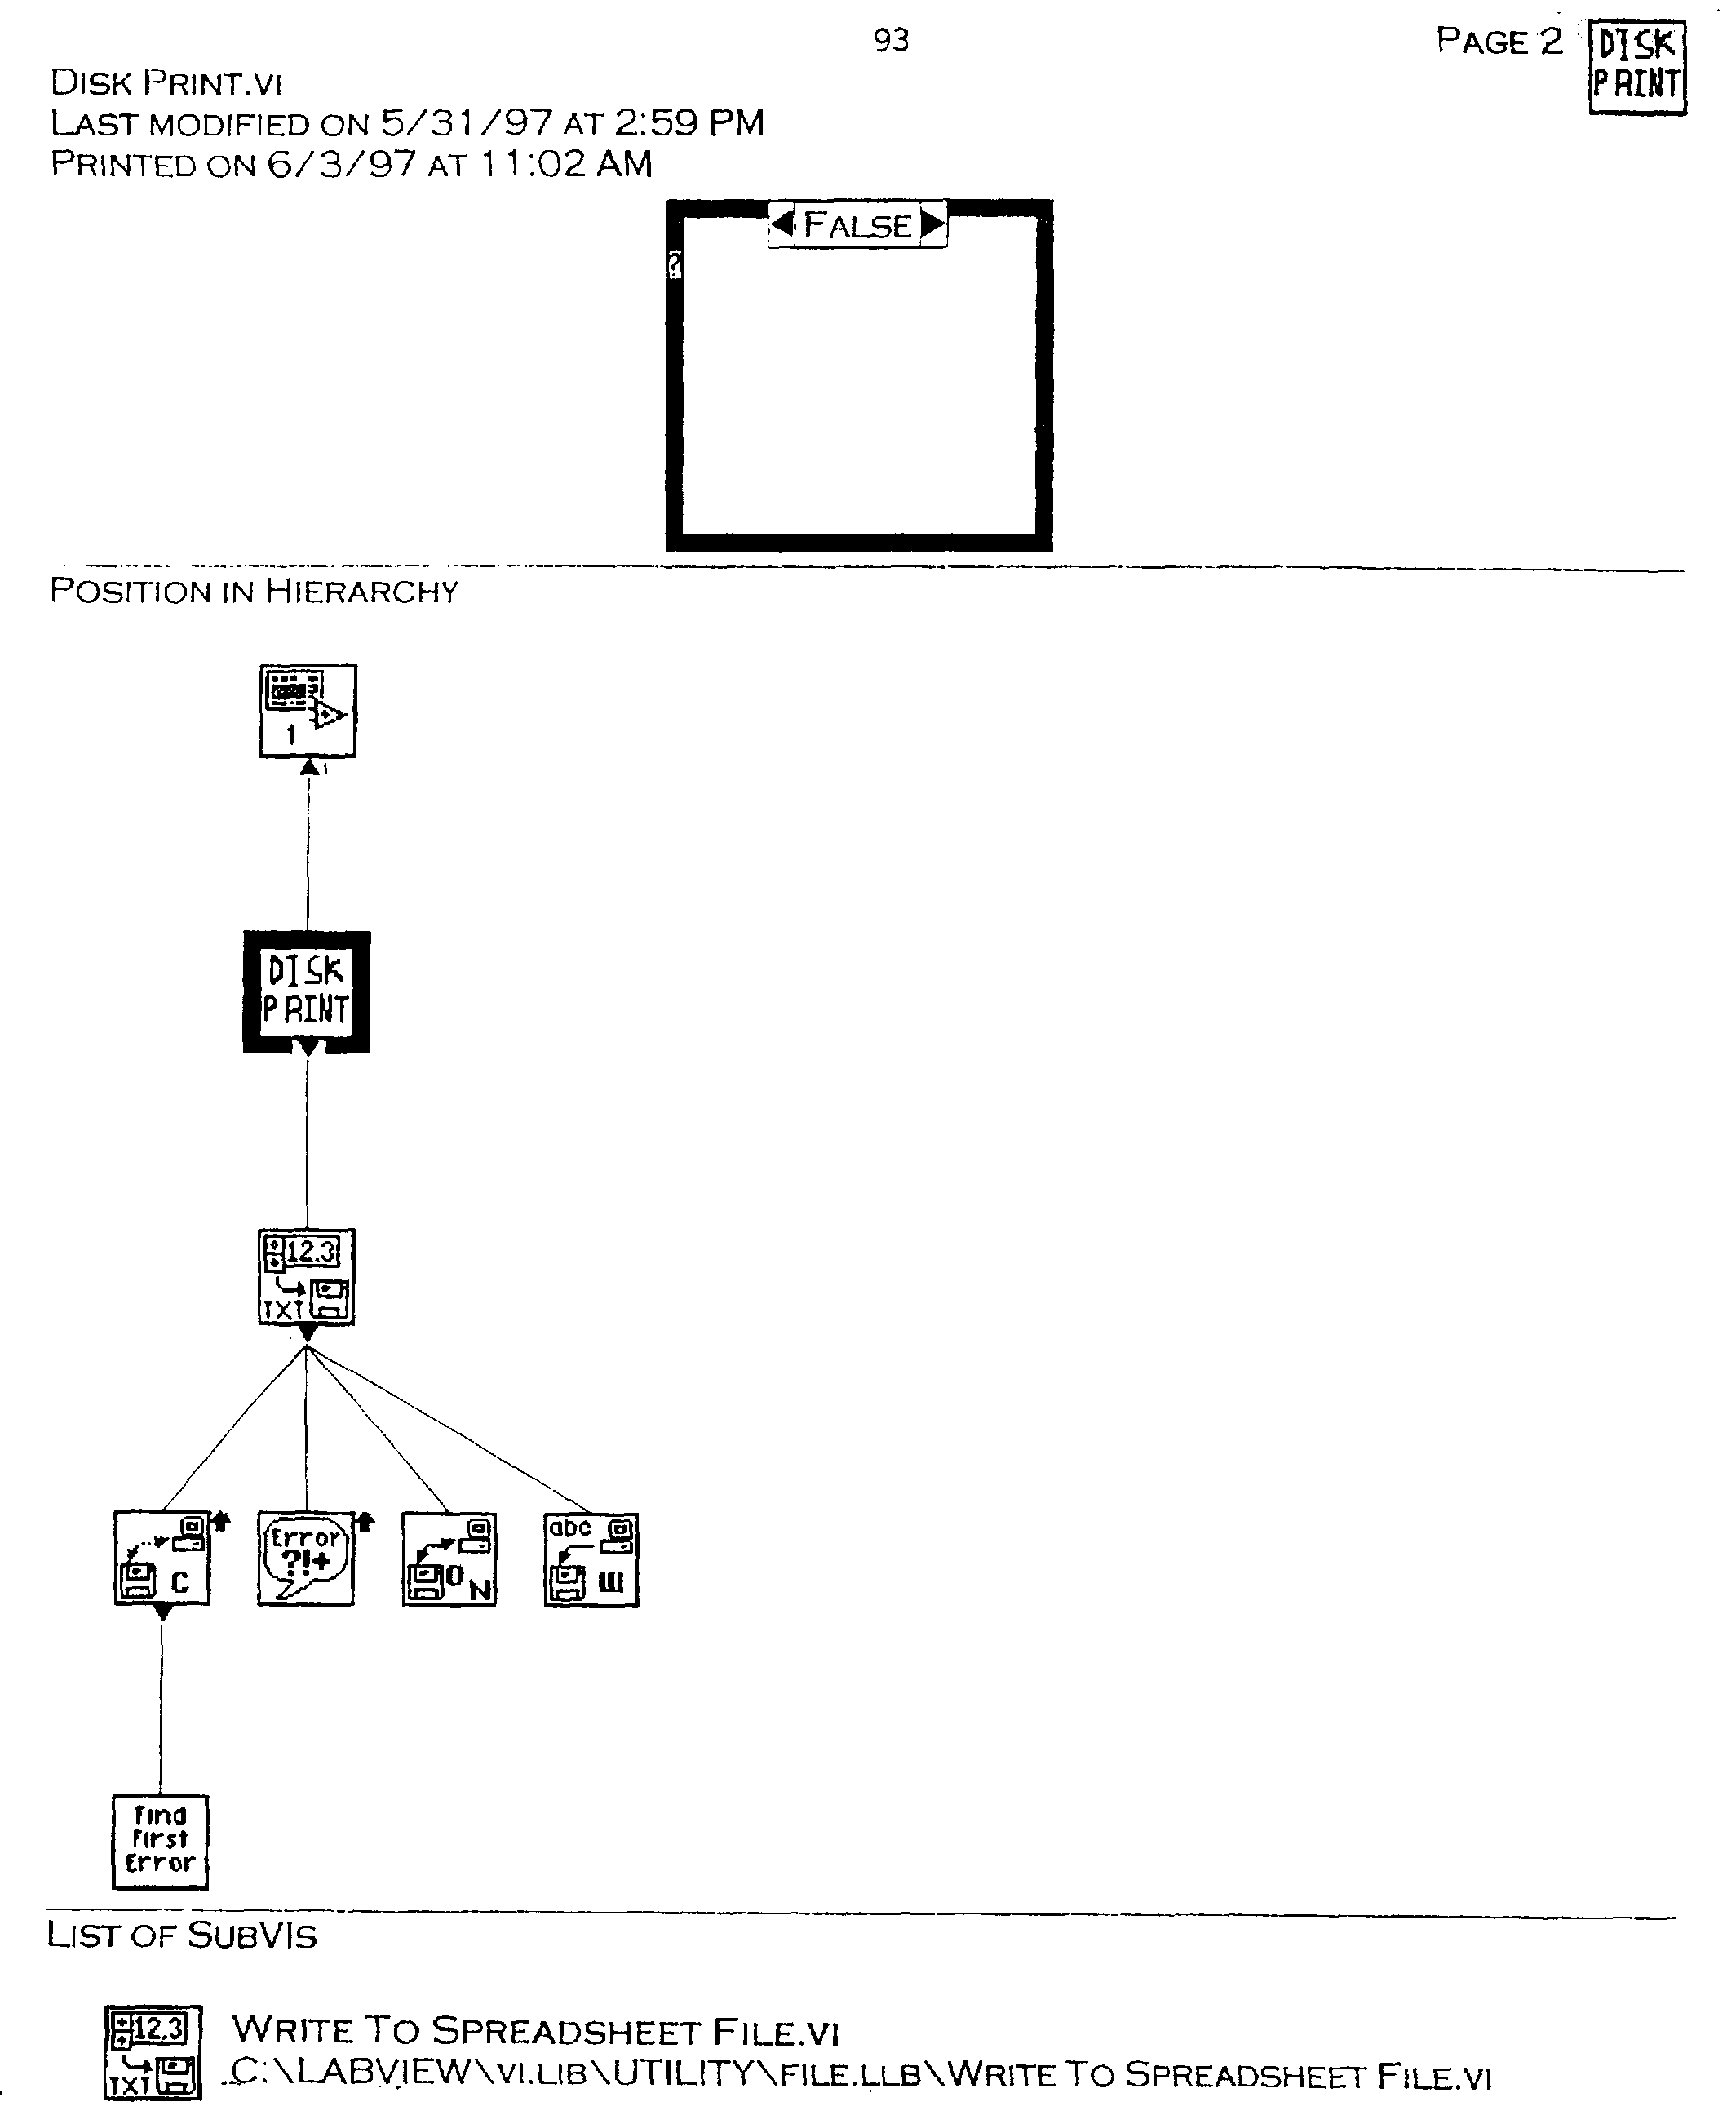 WO1997046714A1 - Monitoring hybridization during pcr